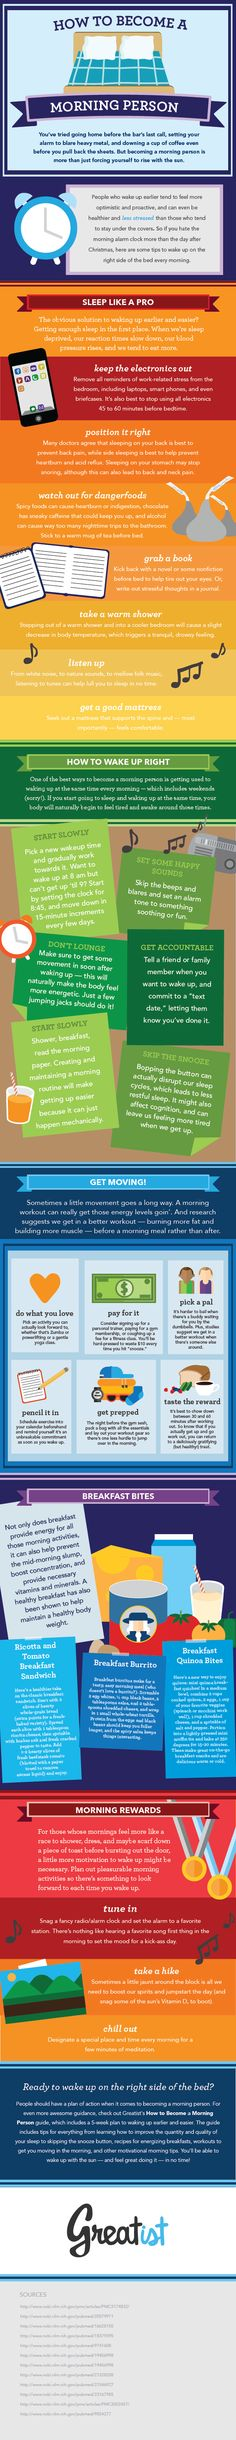 How to Be a Morning Person [INFOGRAPHIC] #motivation #study #students